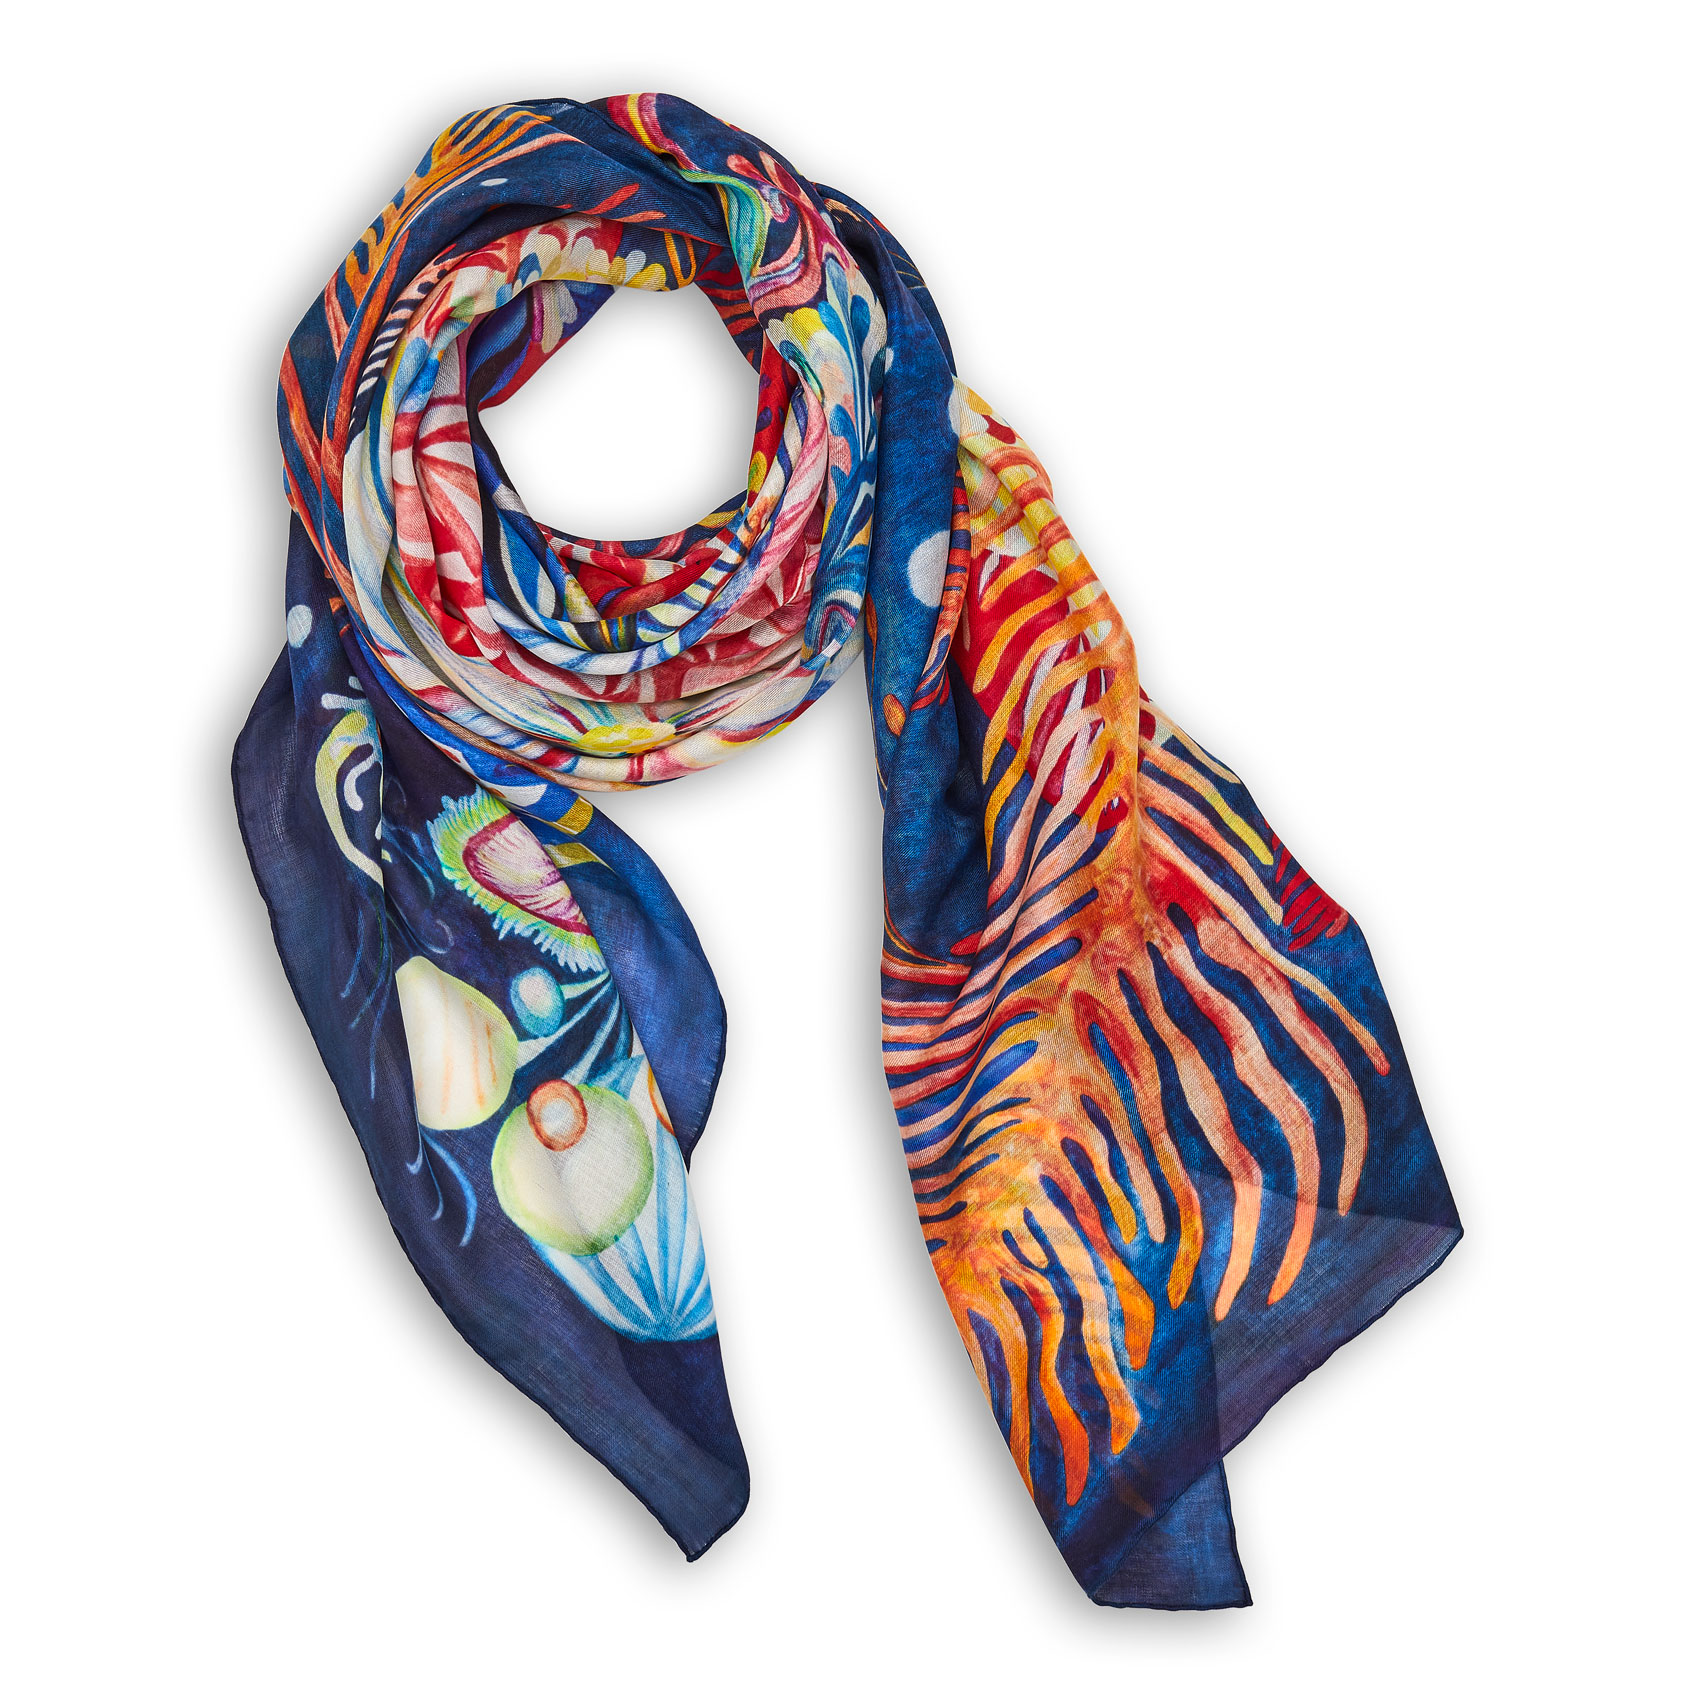 Seagarden Foulard Royal